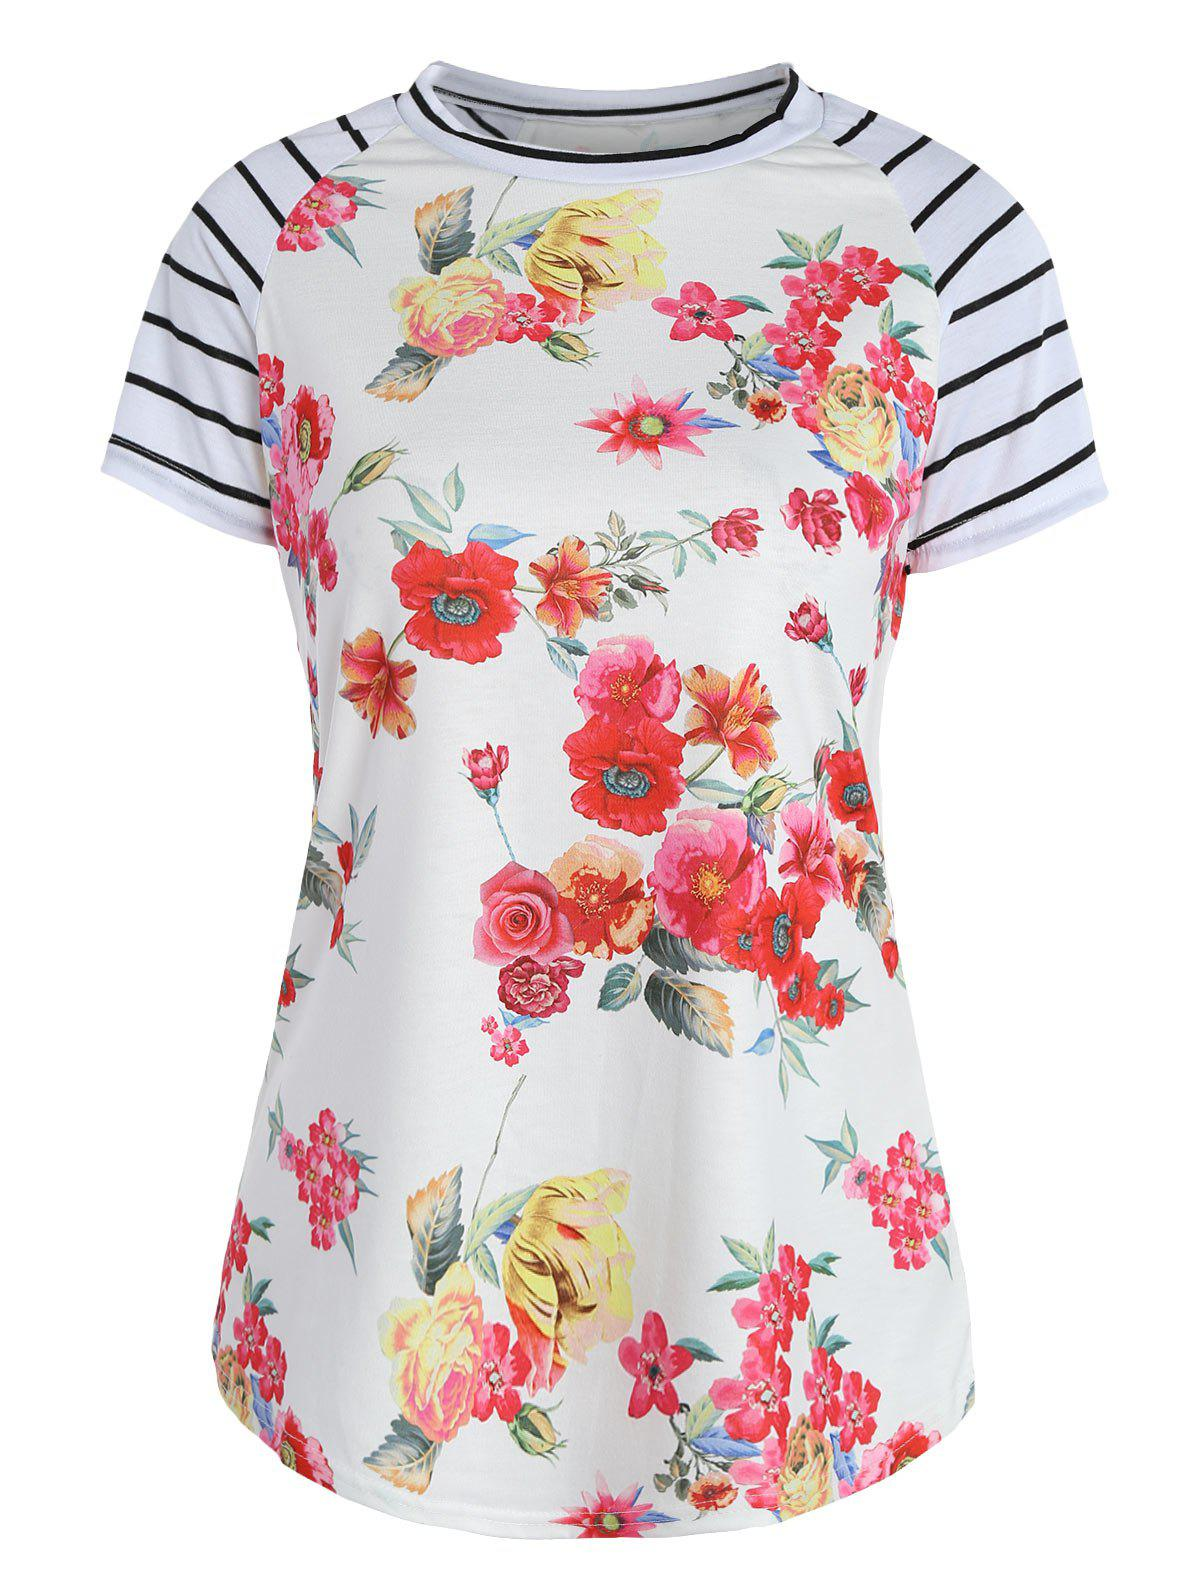 Cheap Stripes Floral Raglan Sleeve Top